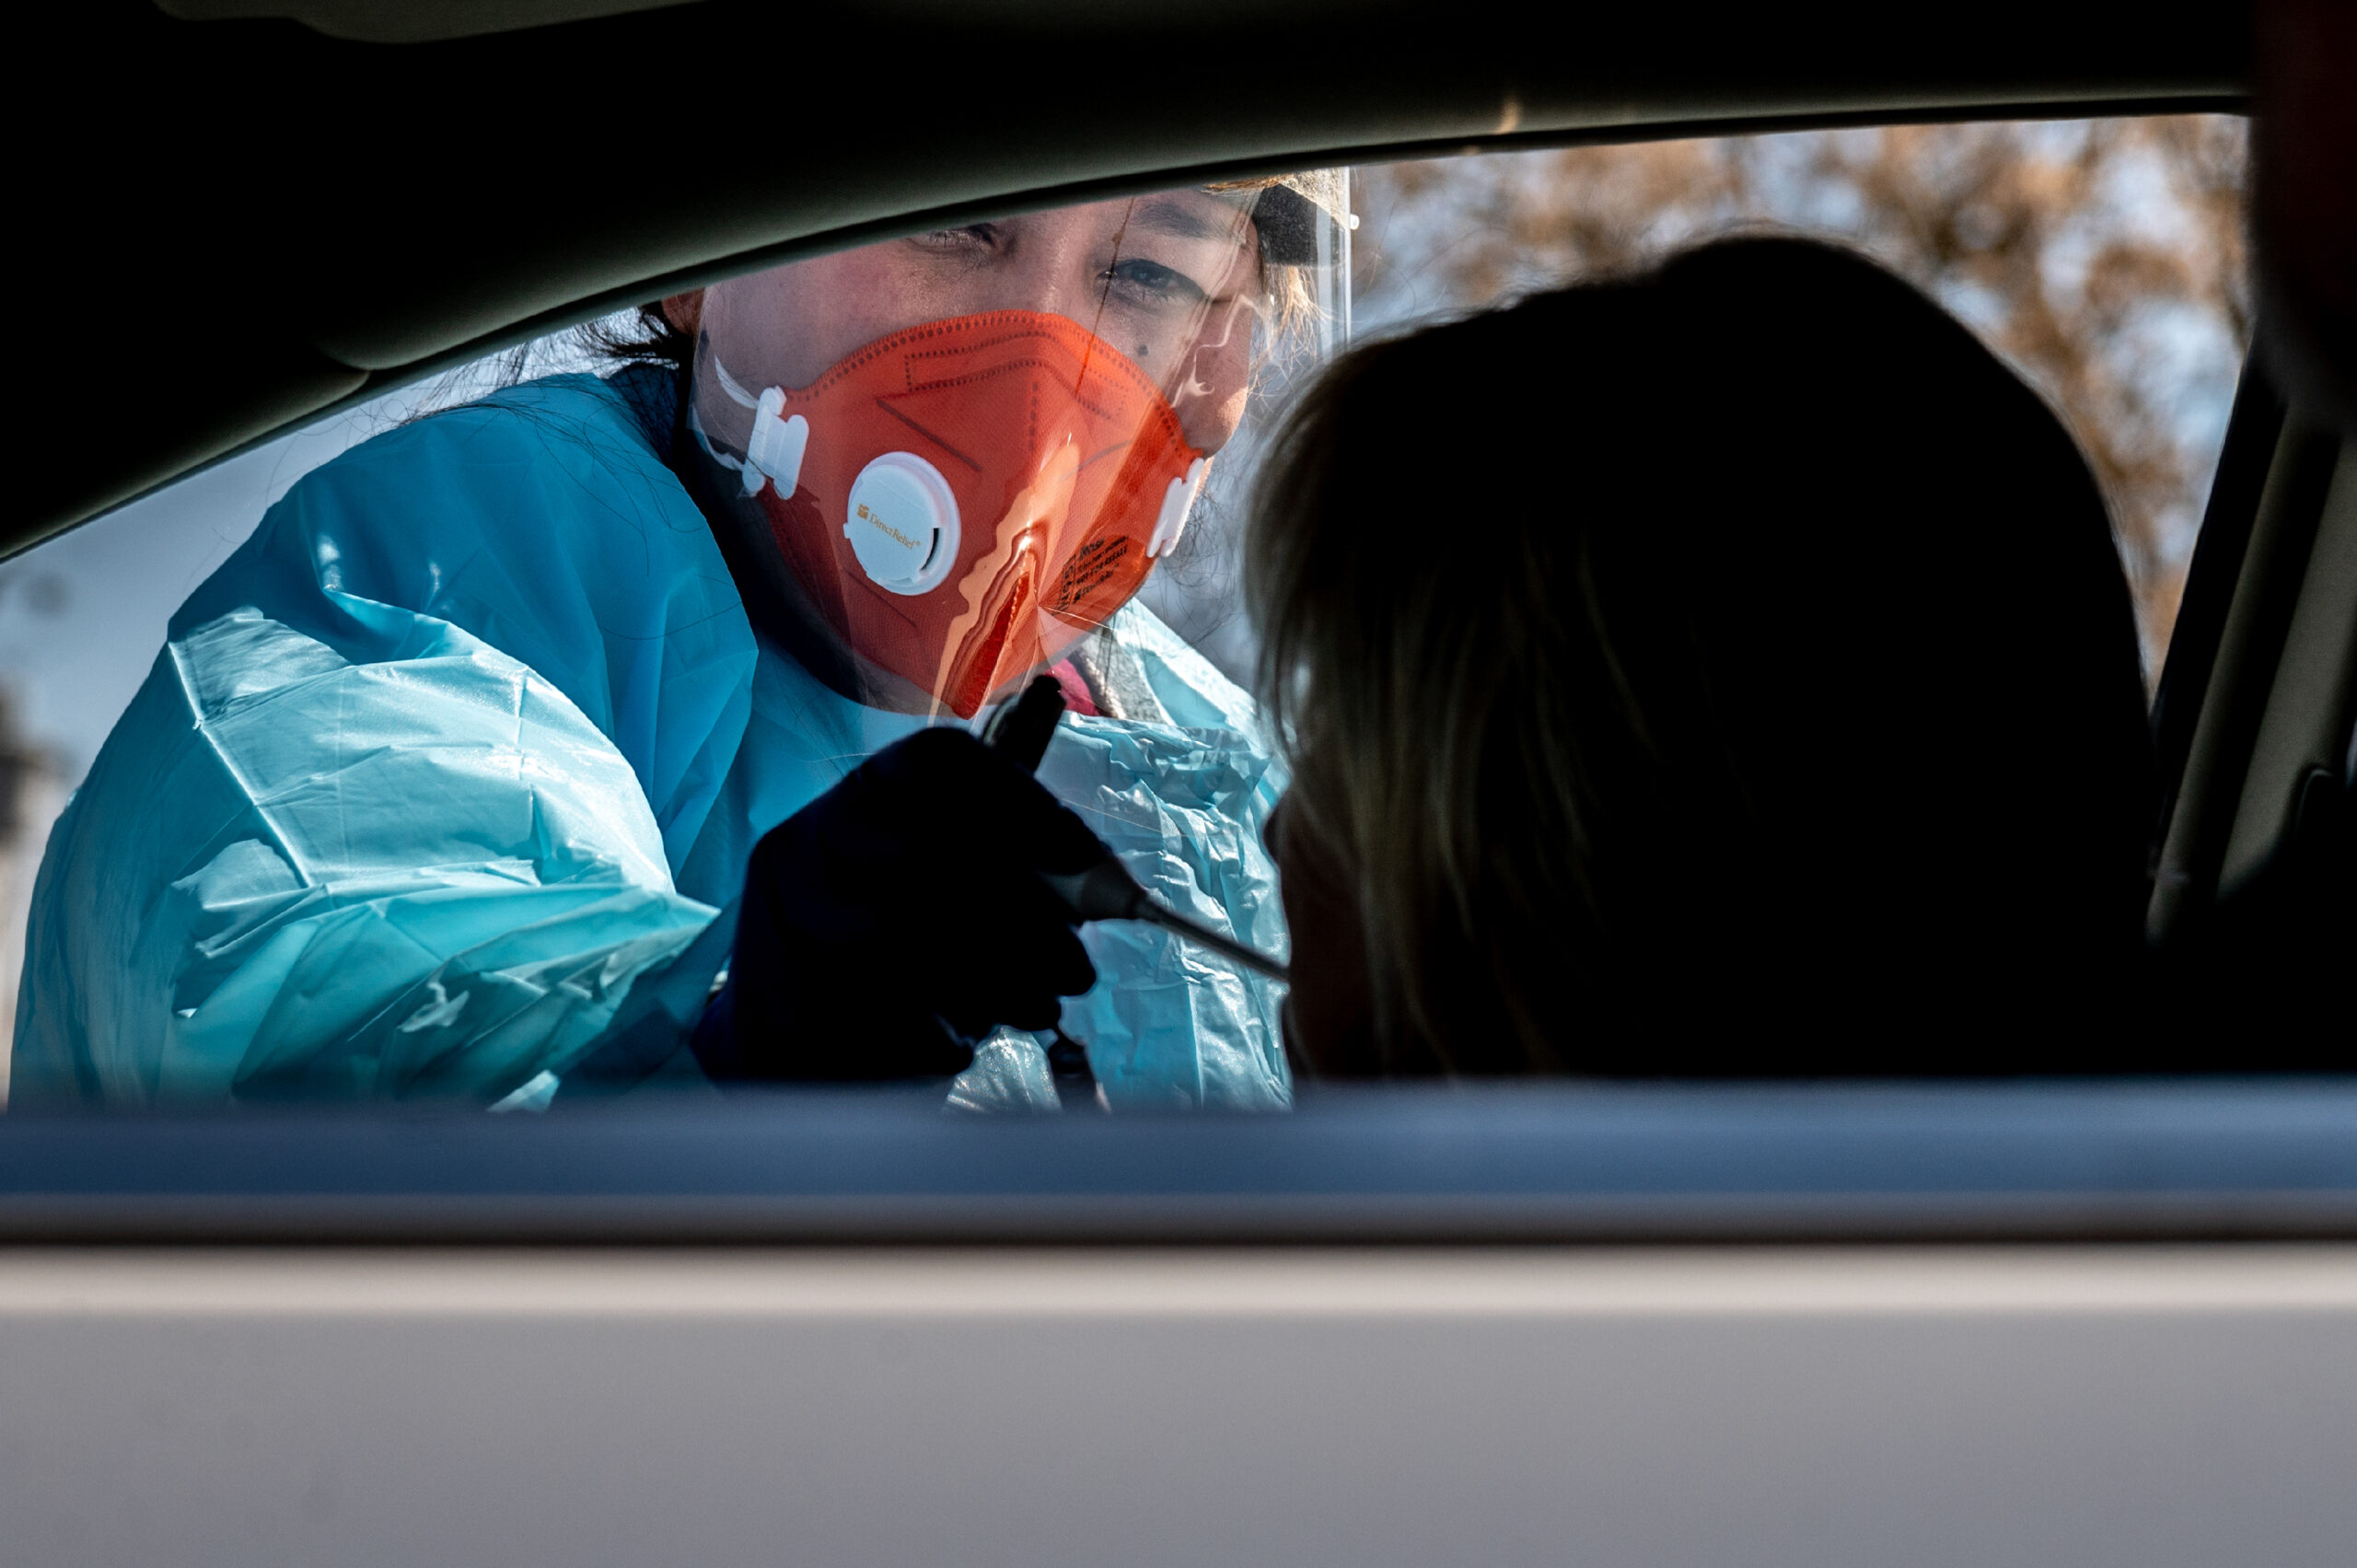 Staff with Ampla Health Care conduct Covid-19 testing at a drive-through site in Yuba City, California, on Friday, March 27, 2020. The site was provided with protective gear from Direct Relief. (Photo by Renée C. Byer/ZUMA Wire)